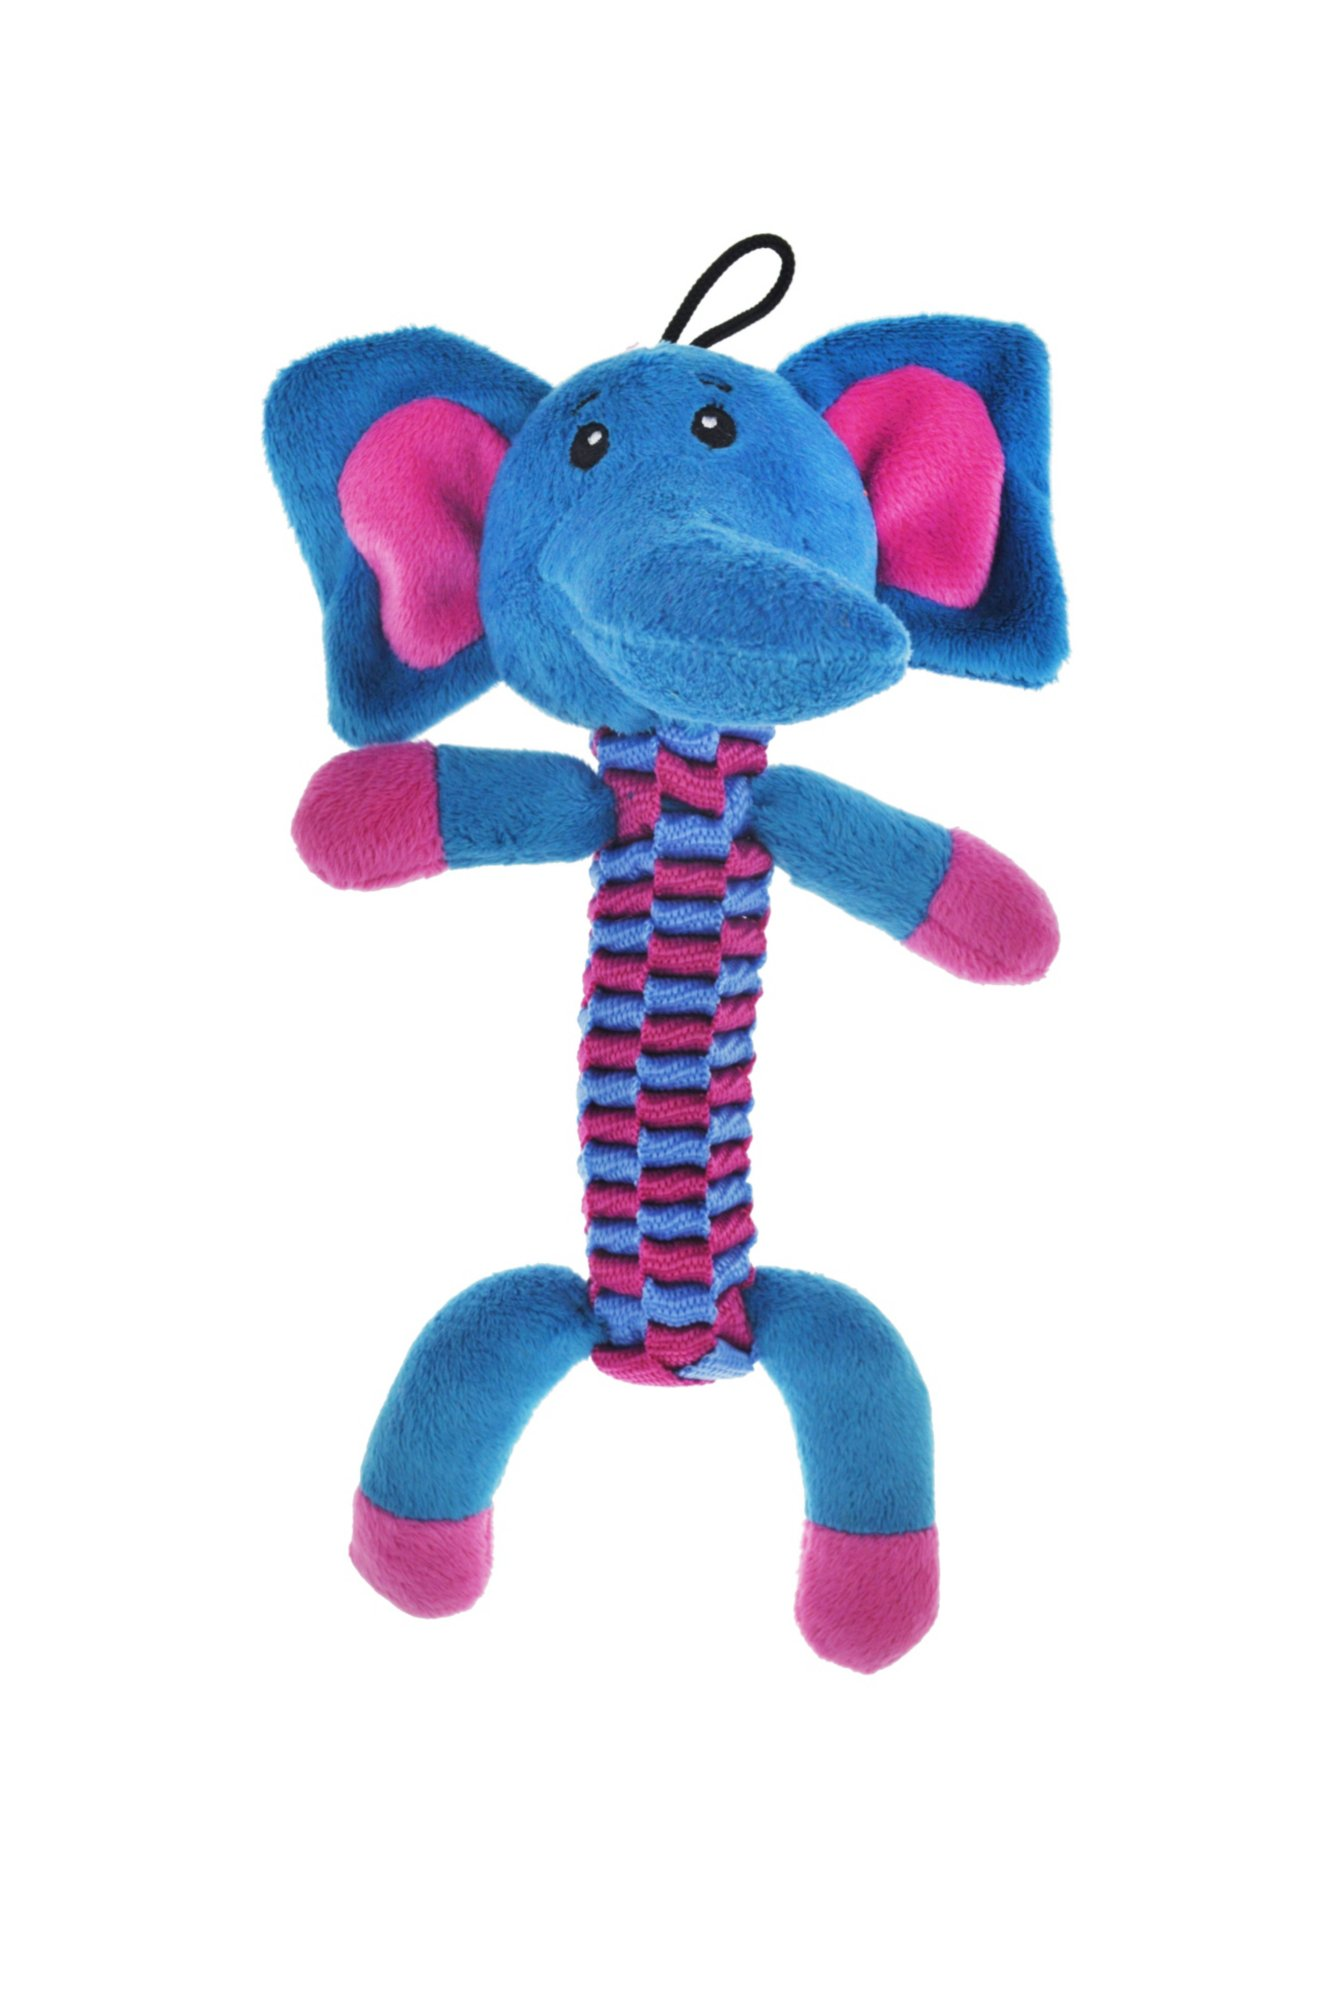 Bark A Boo Woven Body Twister Elephant